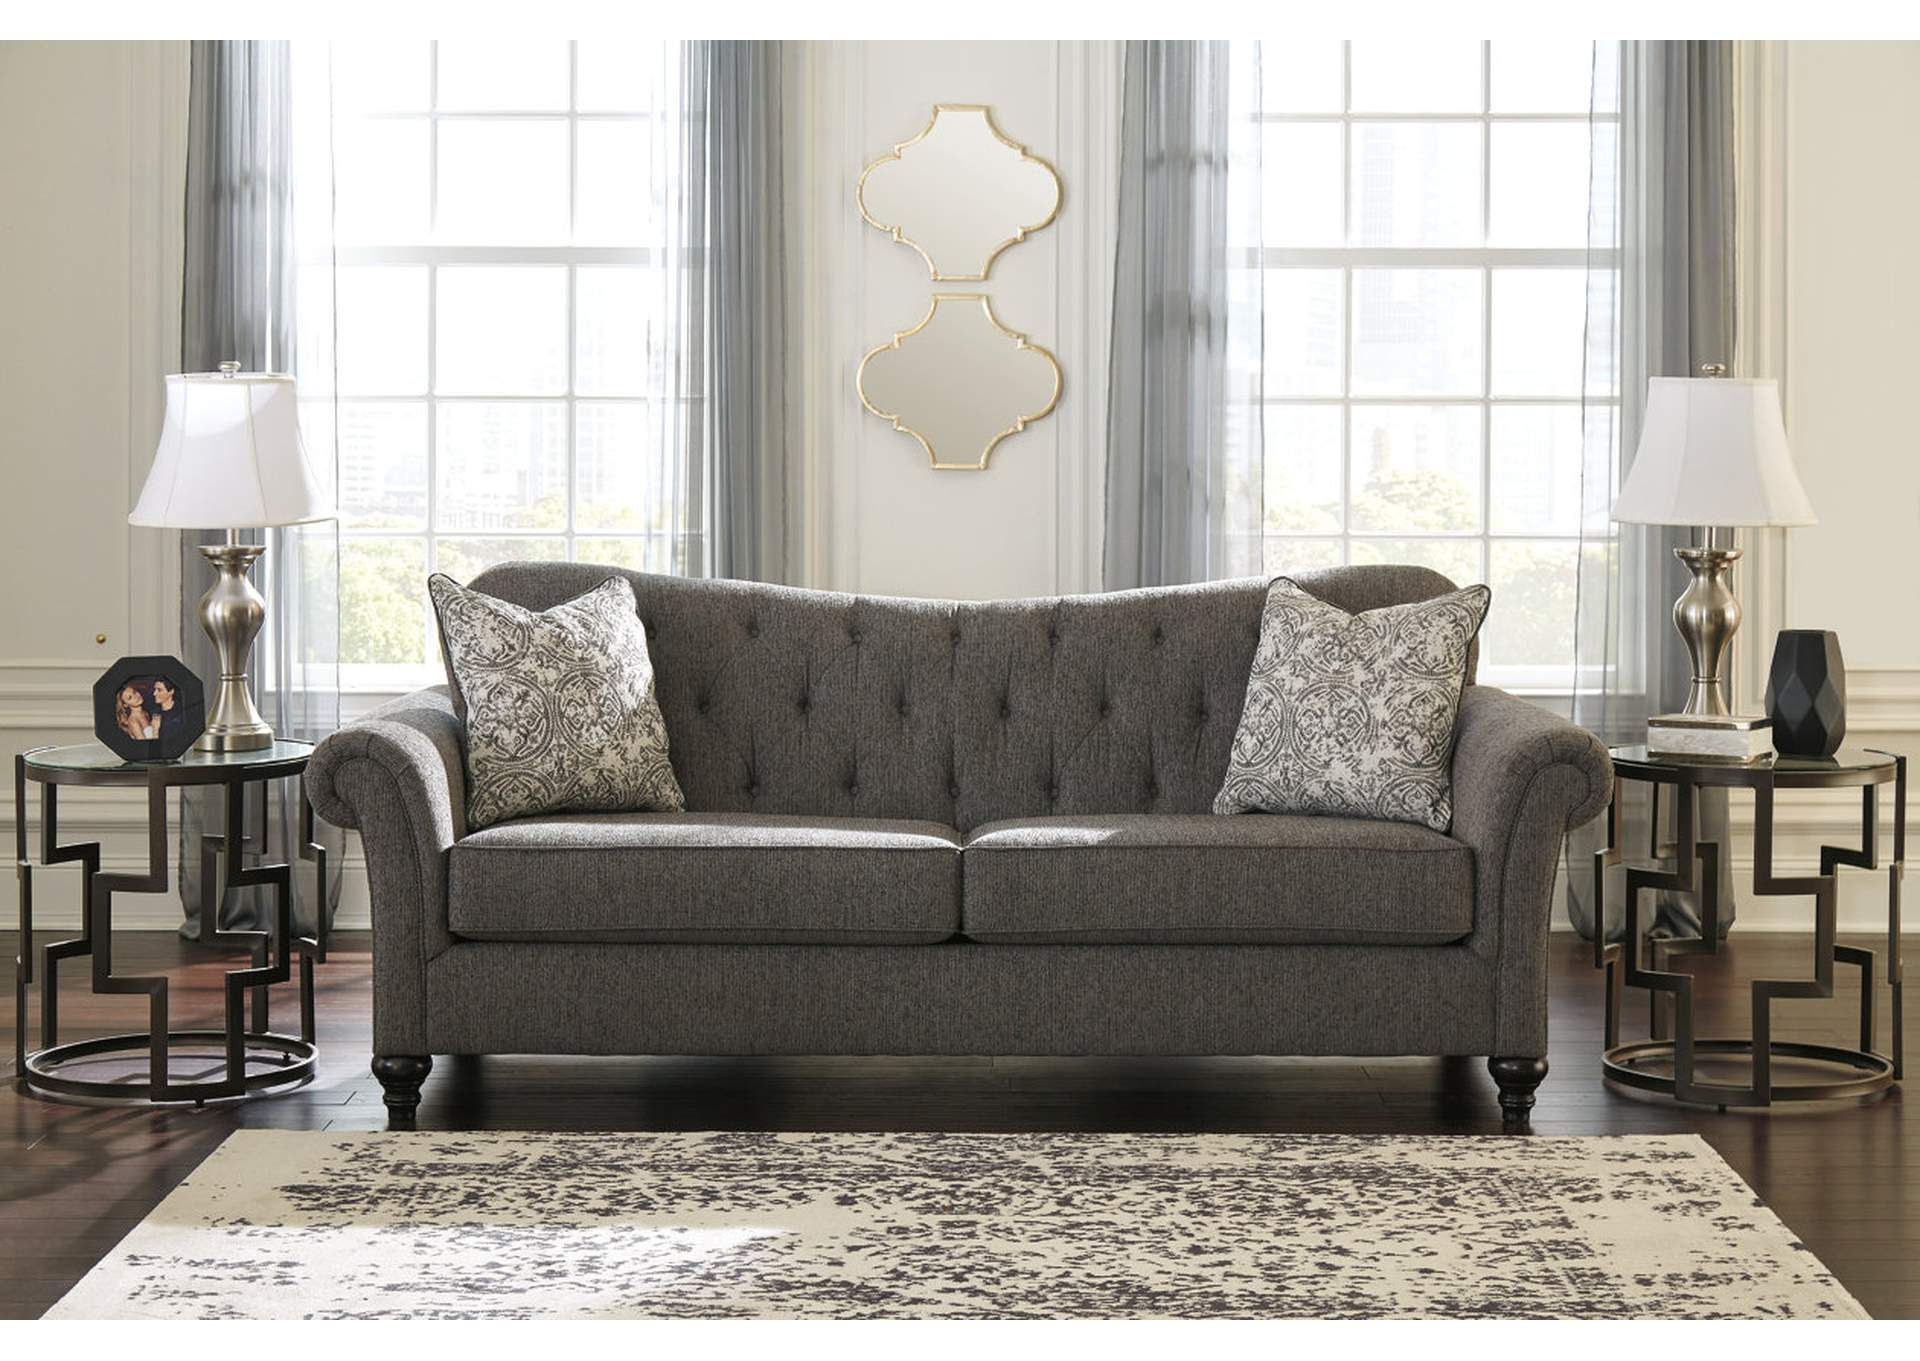 Praylor Slate Fabric Sofa,Signature Design By Ashley